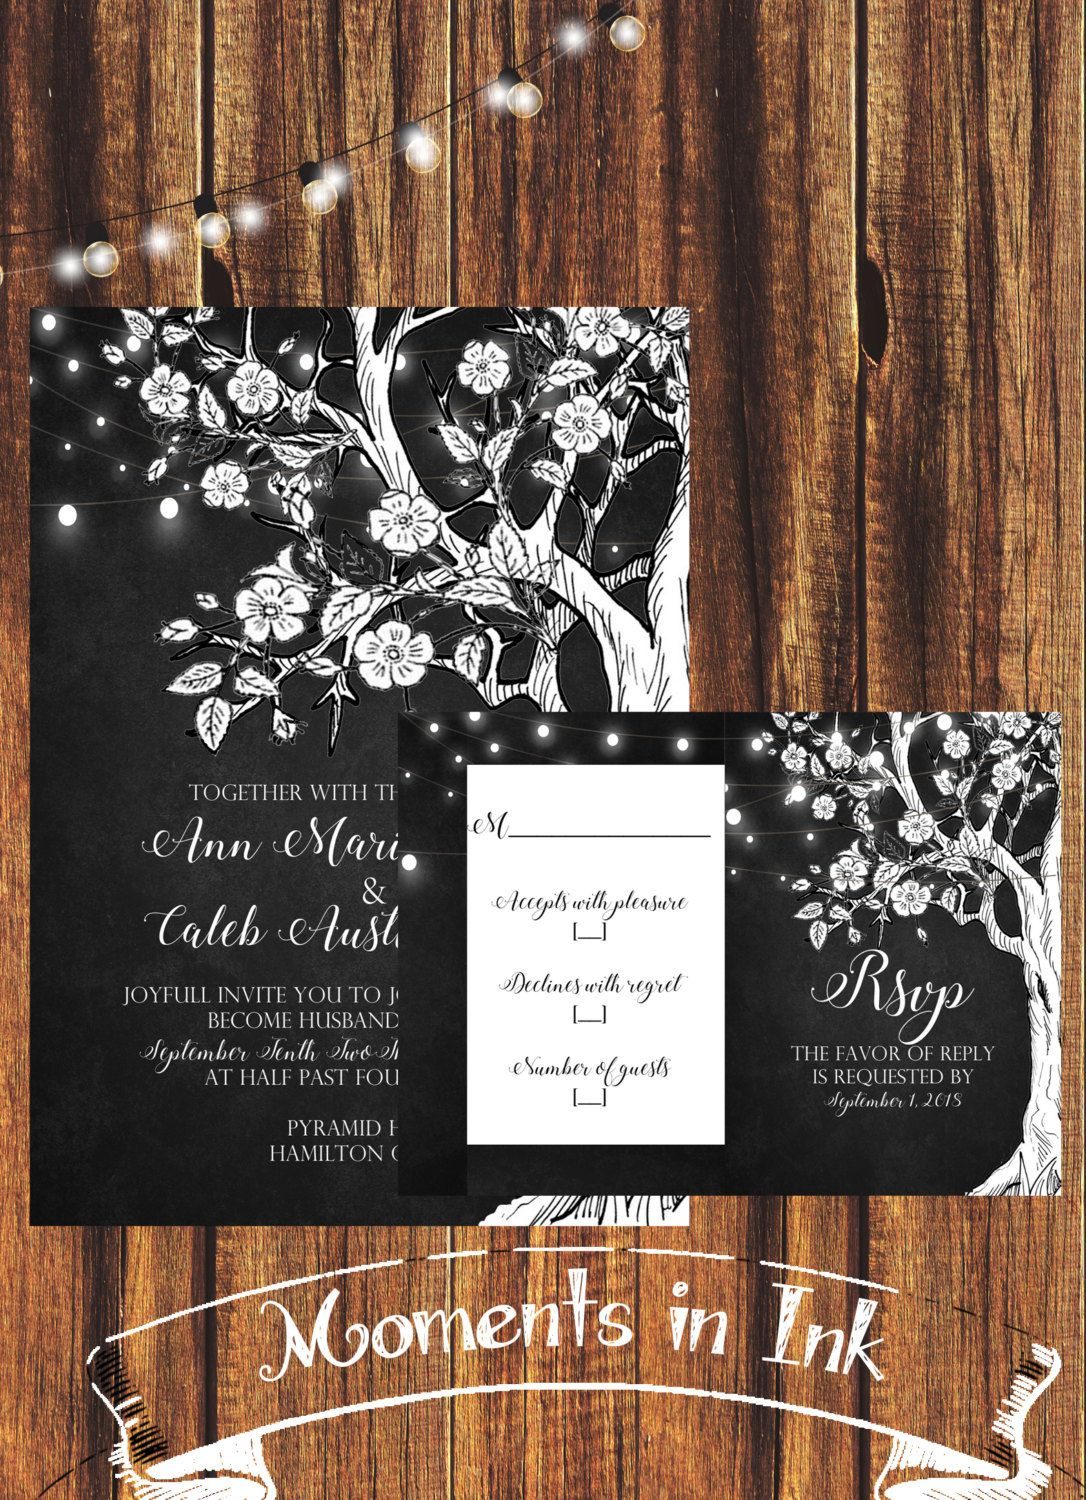 Charcoal And White Tree Wedding Invitationfree Shipping Rustic Country Elegant Floral By Momentsinink On Etsy: Floral Wedding Invitations With Tree At Websimilar.org